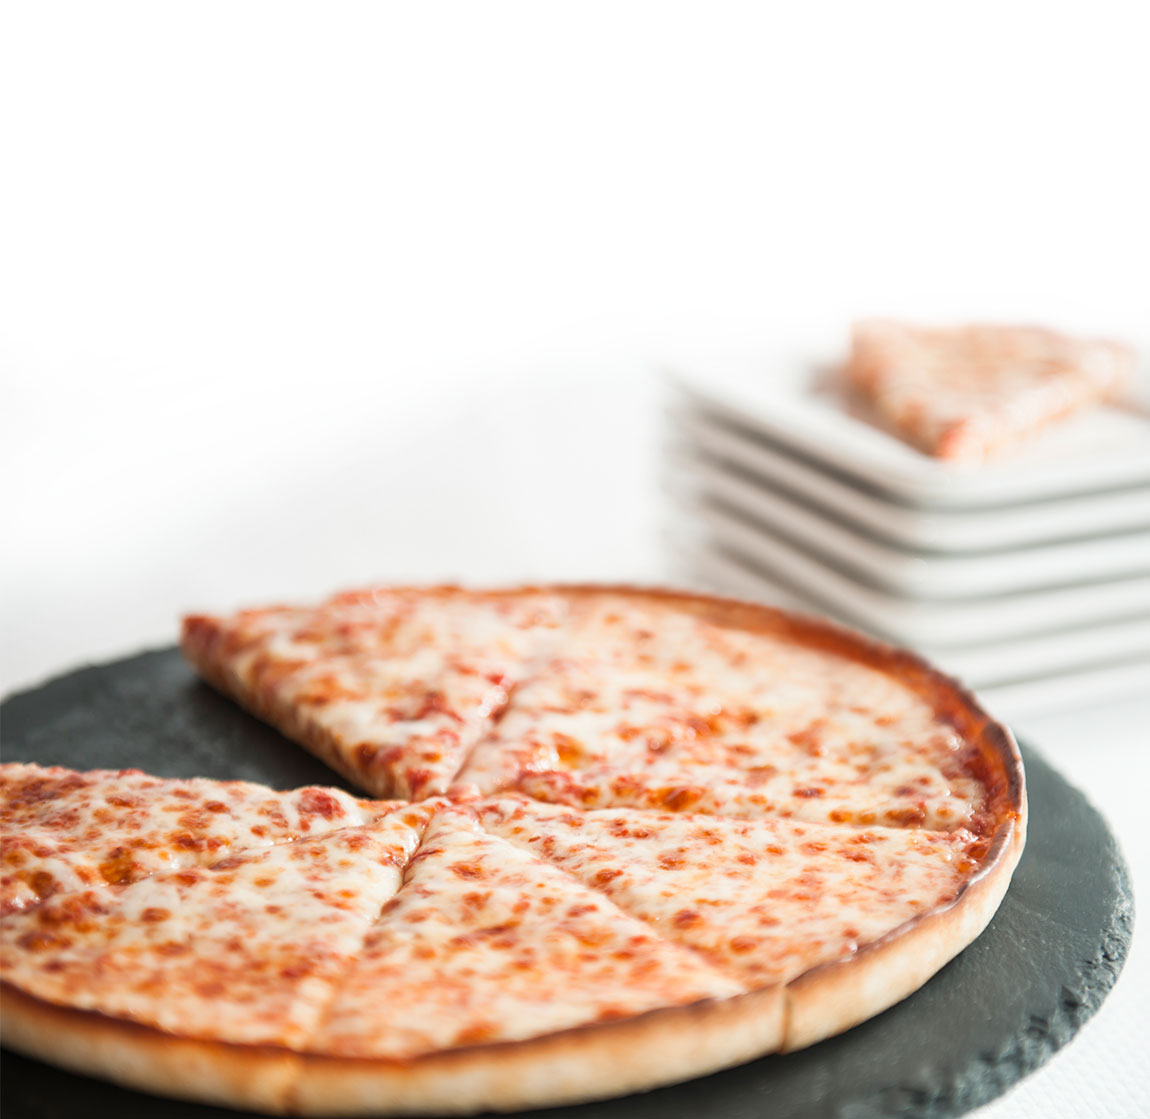 Pizza on a stone plate.